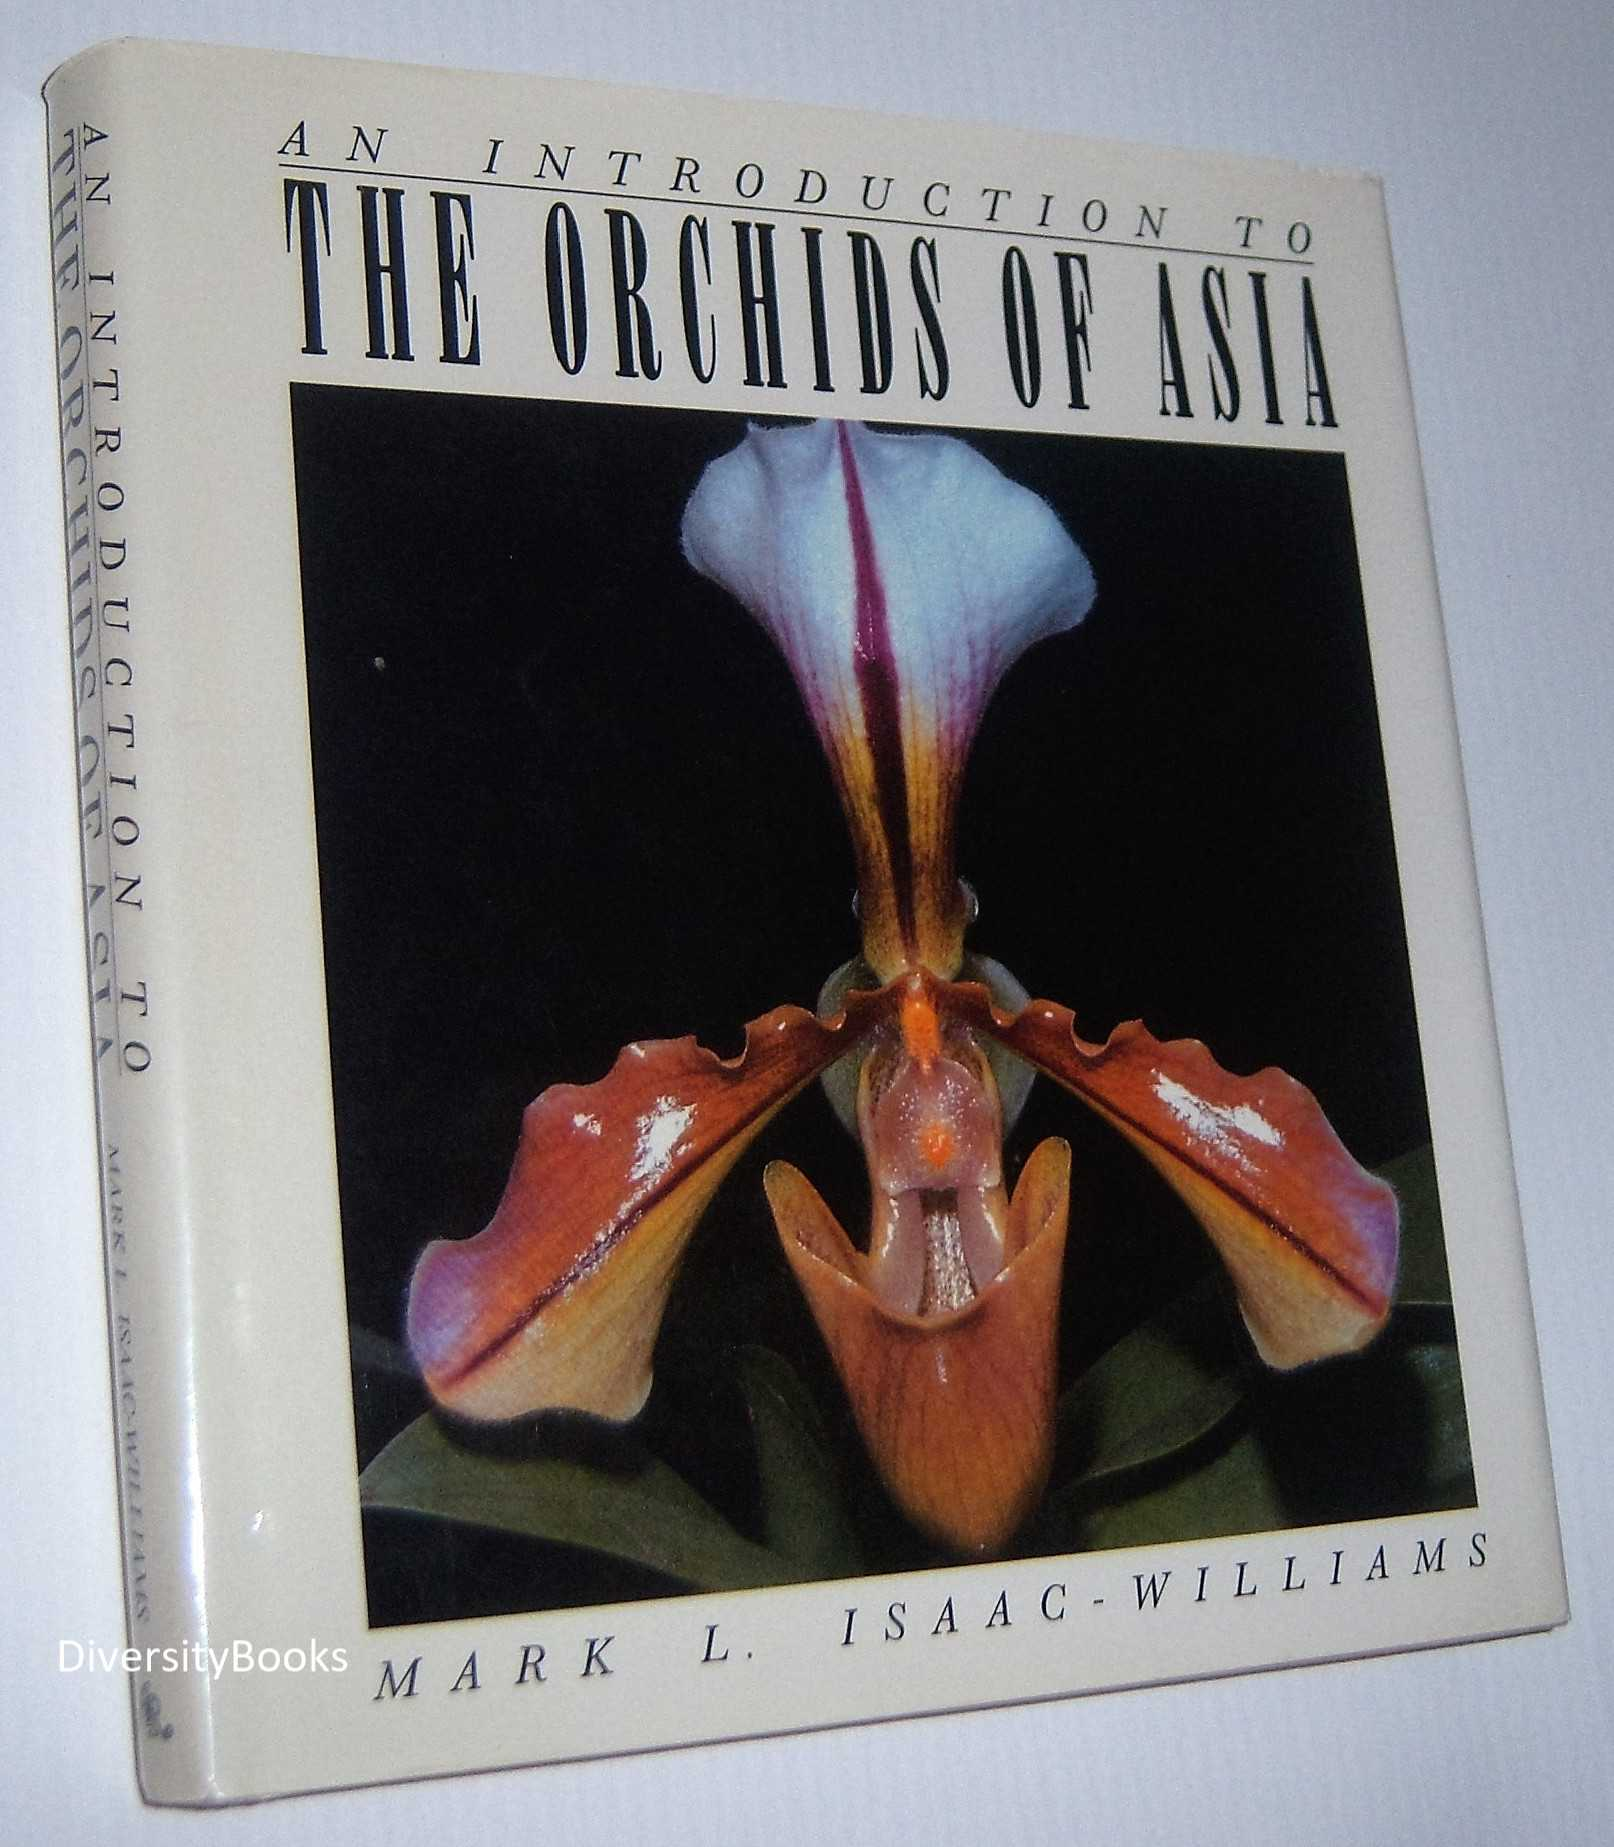 Image for AN INTRODUCTION TO THE ORCHIDS OF ASIA